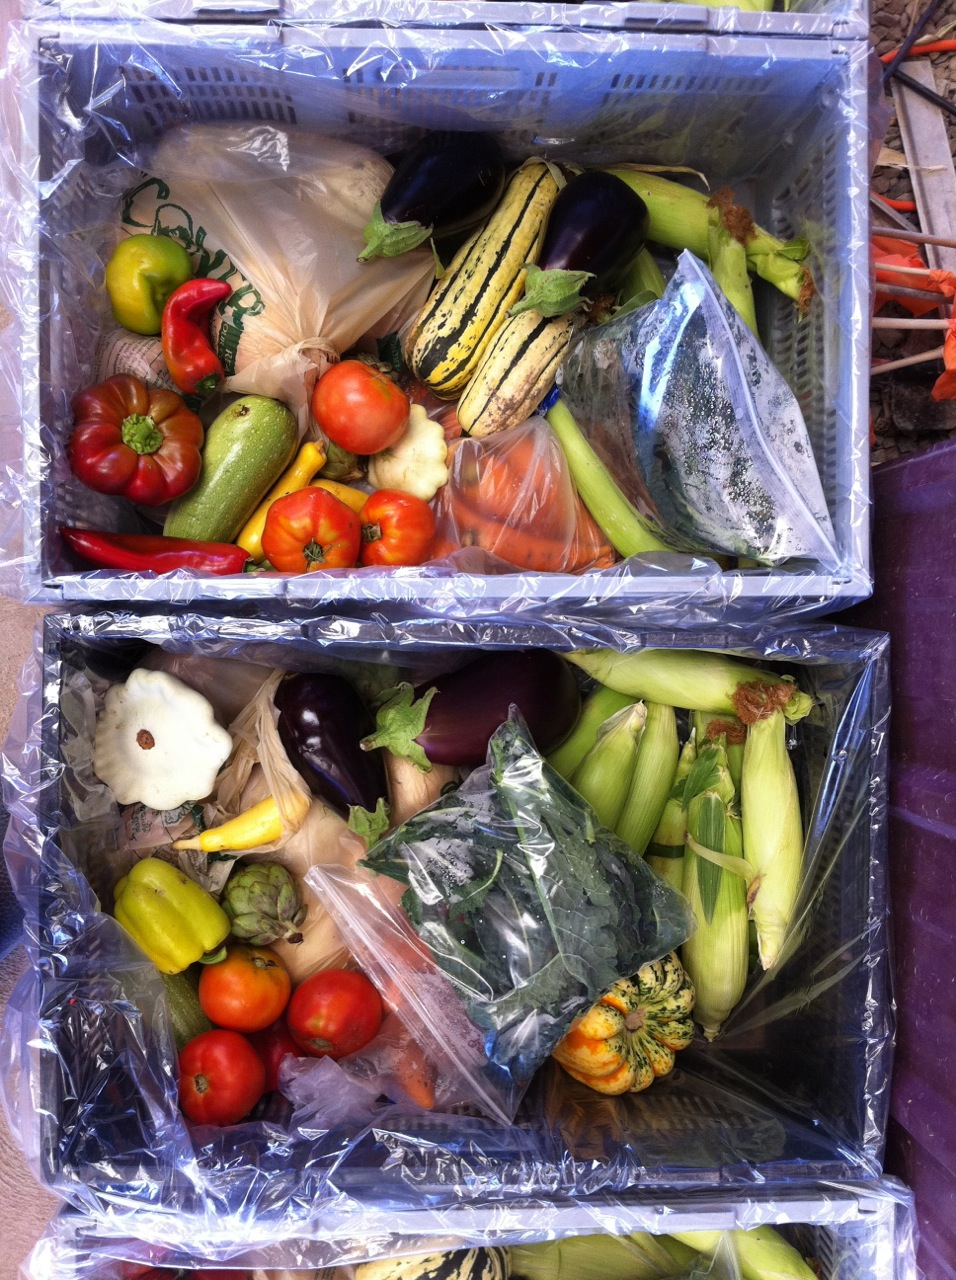 2011 CSA Newsletter – Weeks 14-16/17 – When will you stop giving me all this produce?